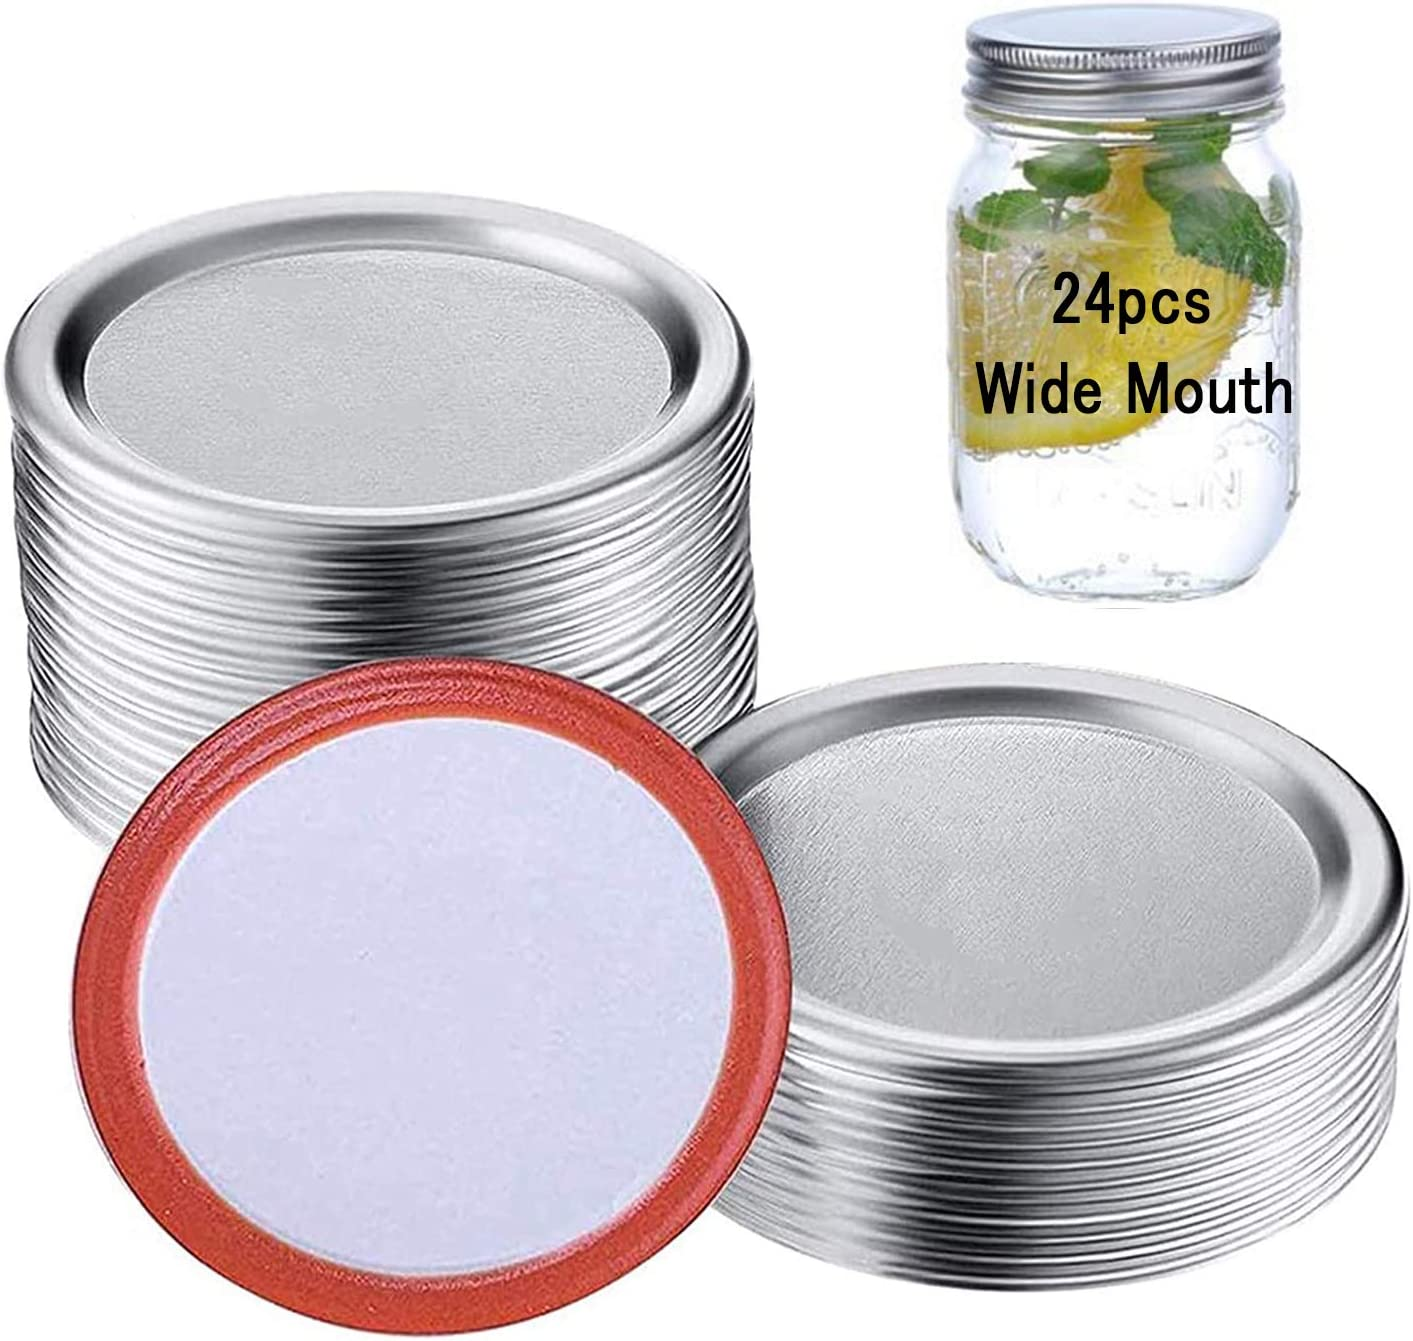 Wide Mouth Canning Lids - Canning Supplies, Split-Type Mason Jar Lids for Canning(Silver-only Lids 86mm, 24 Pack)